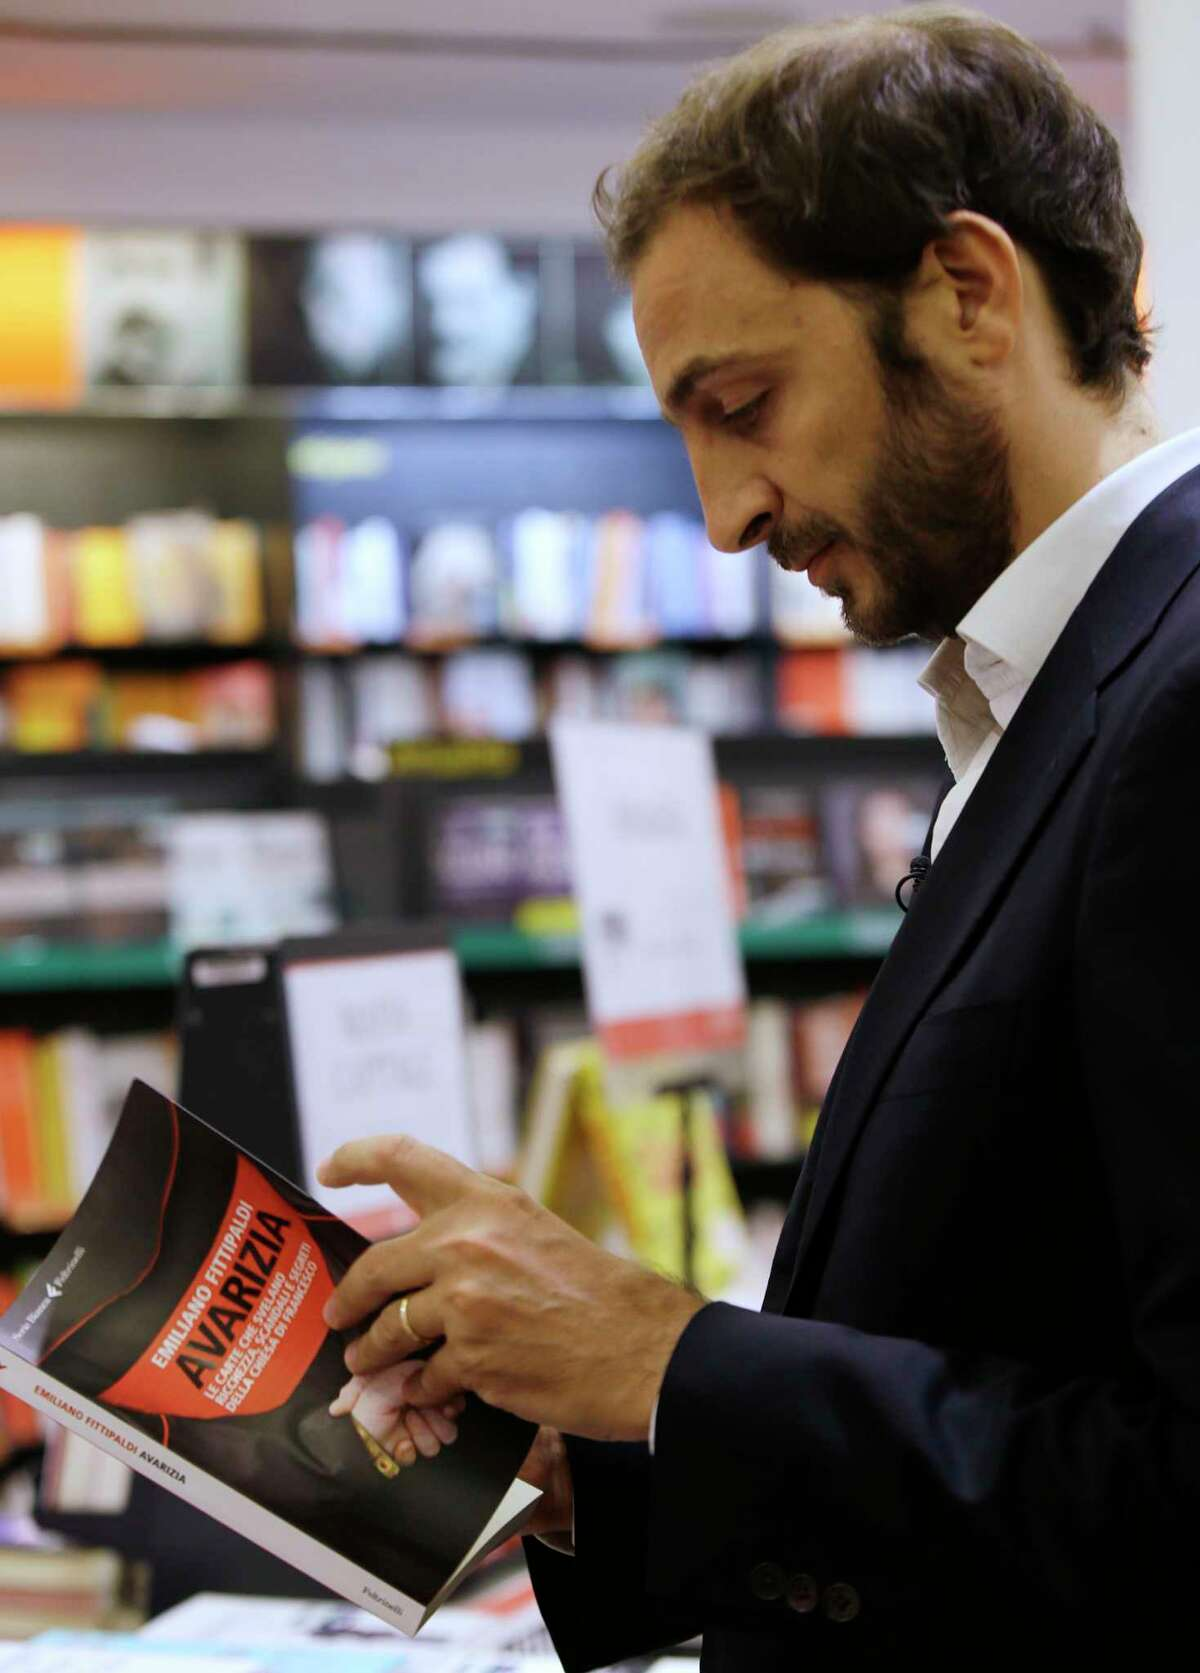 """Italian journalist Emiliano Fittipaldi browses through his book titled """" Avarice"""" during an interview with The Associated Press, in a Rome's bookstore, Tuesday, Nov. 3, 2015. The Vatican's new leaks scandal intensified Tuesday with two books detailing the mismanagement and internal resistance that is thwarting Pope Francis' financial reform efforts: 'Avarice' by L'Espresso Vatican reporter Emiliano Fittipaldi and 'Merchants in the Temple' by Italian journalist Gianluigi Nuzzi. (AP Photo/Gregorio Borgia)"""